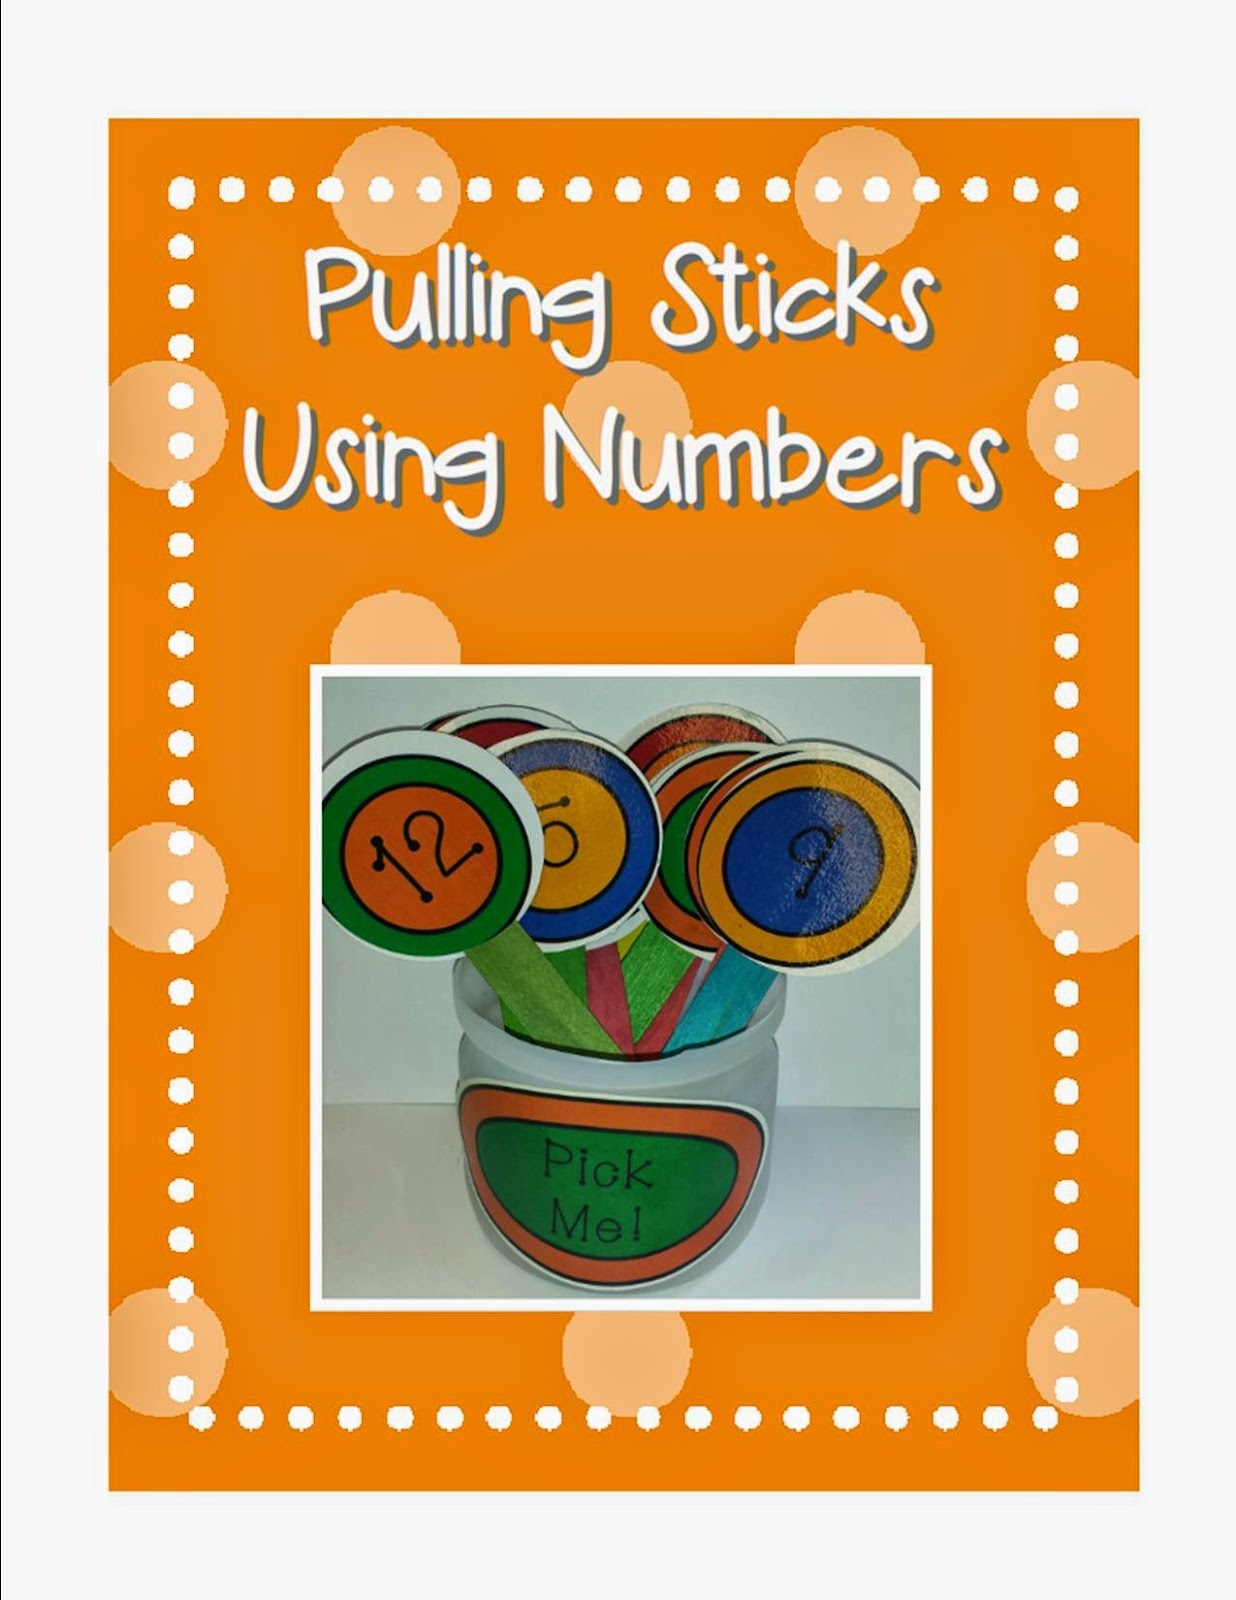 https://www.teacherspayteachers.com/Product/Classroom-Sticks-Labels-1516508